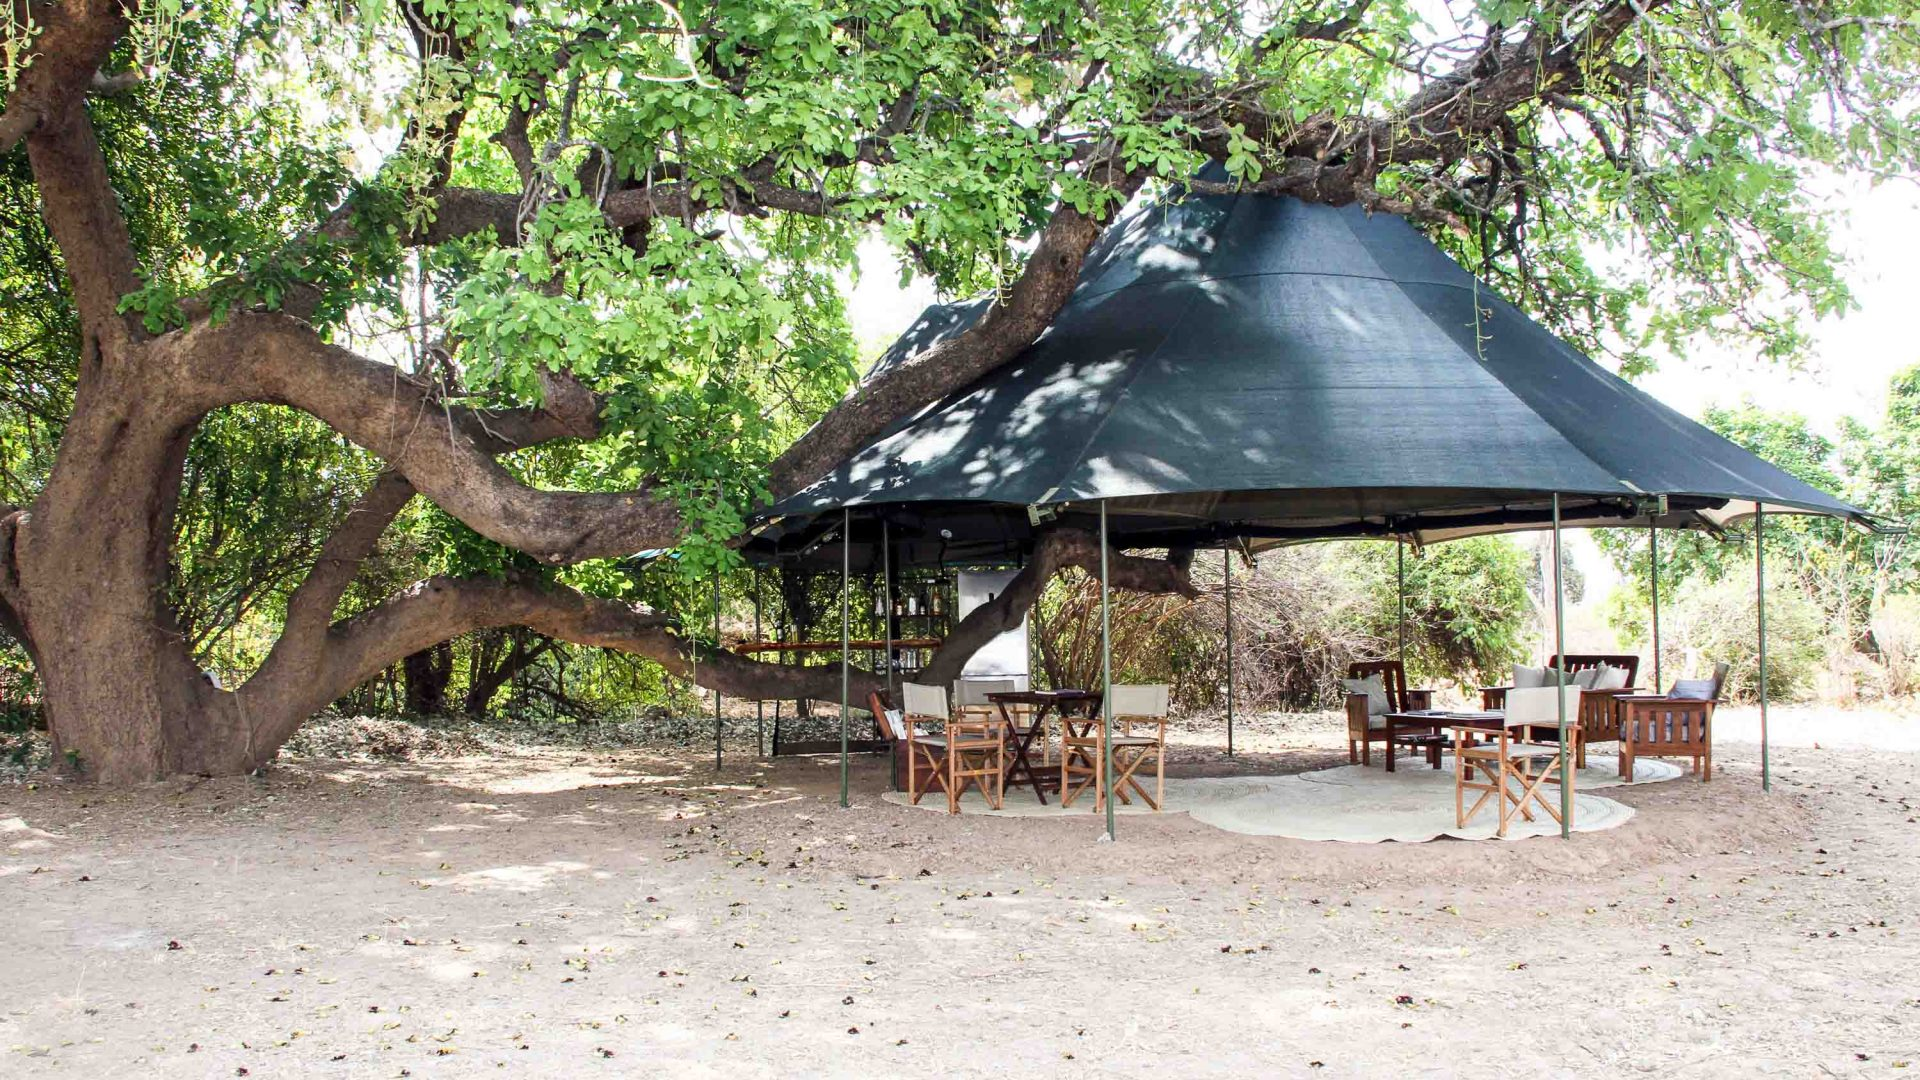 The 'sitenje' tent at Mapazi under a large sausage tree with a large bough supporting the bar.